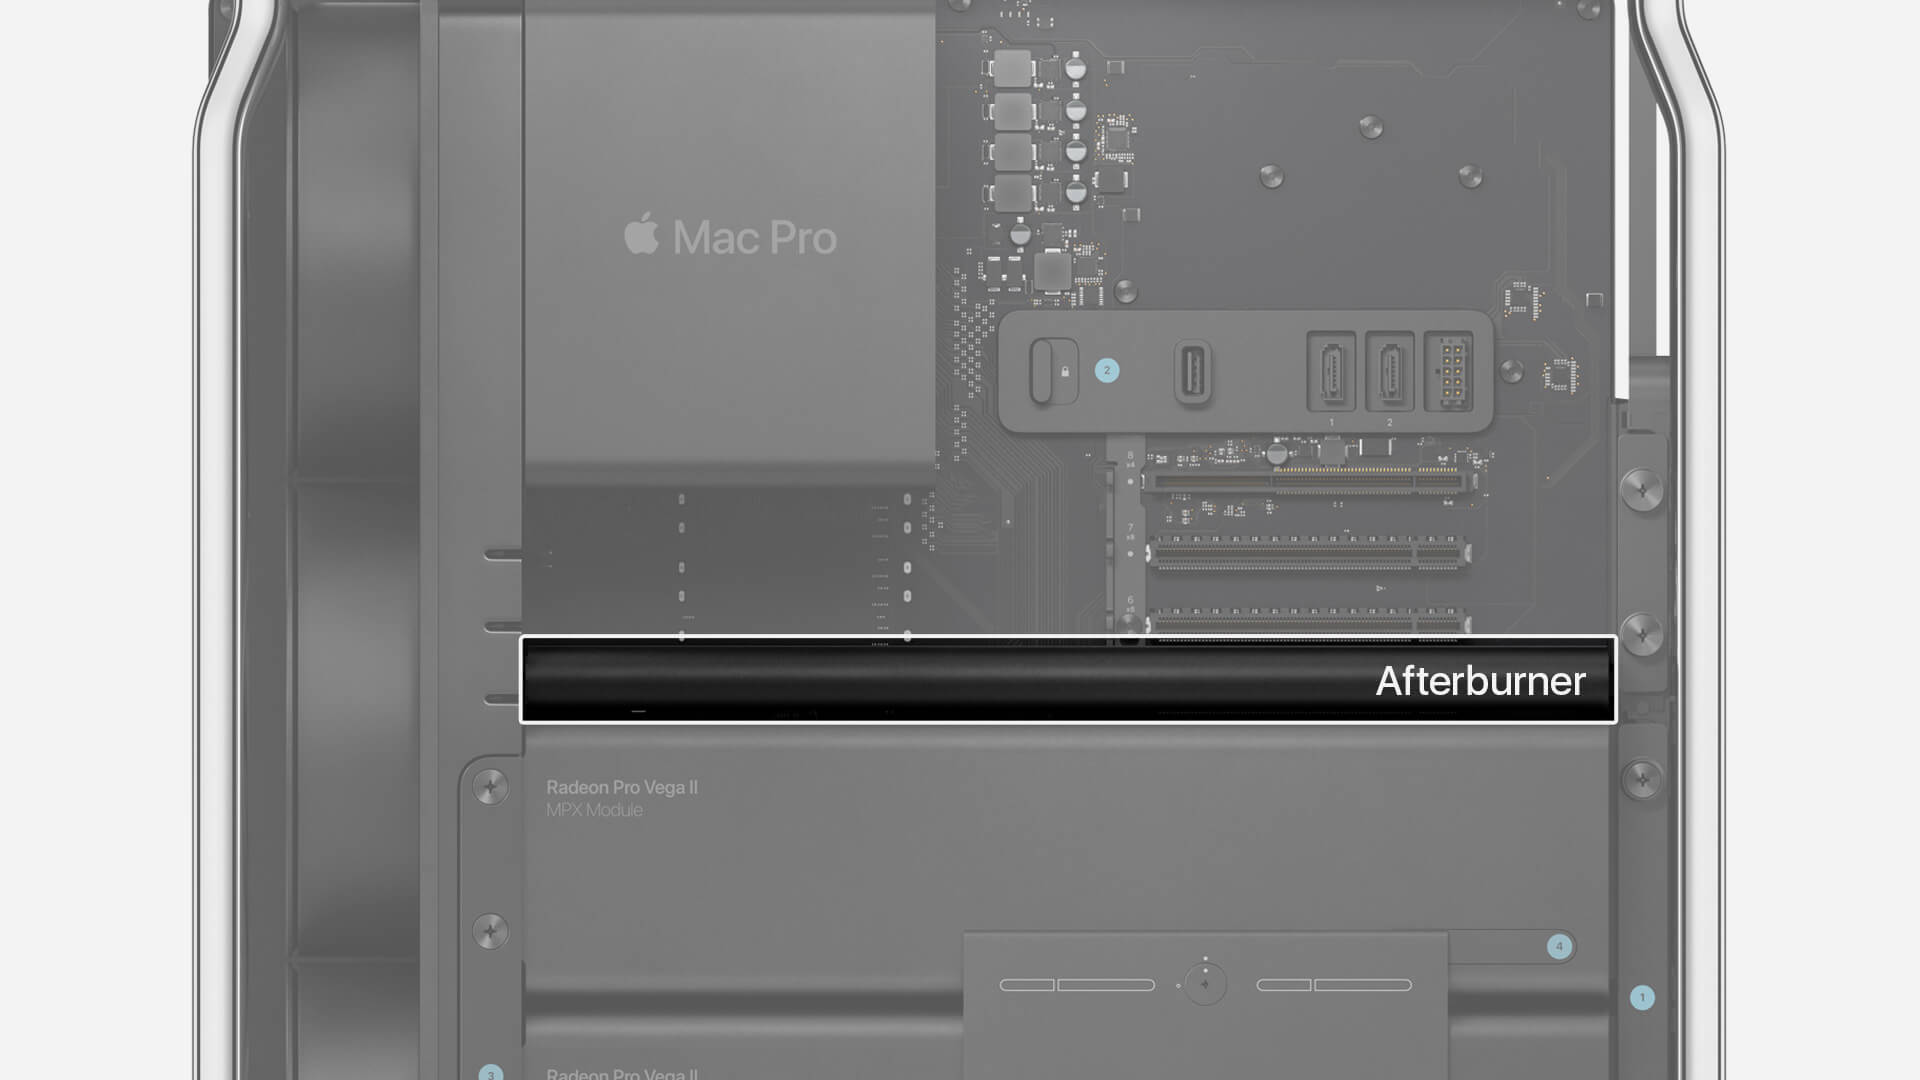 What is Mac Pro Afterburner Accelerator Card